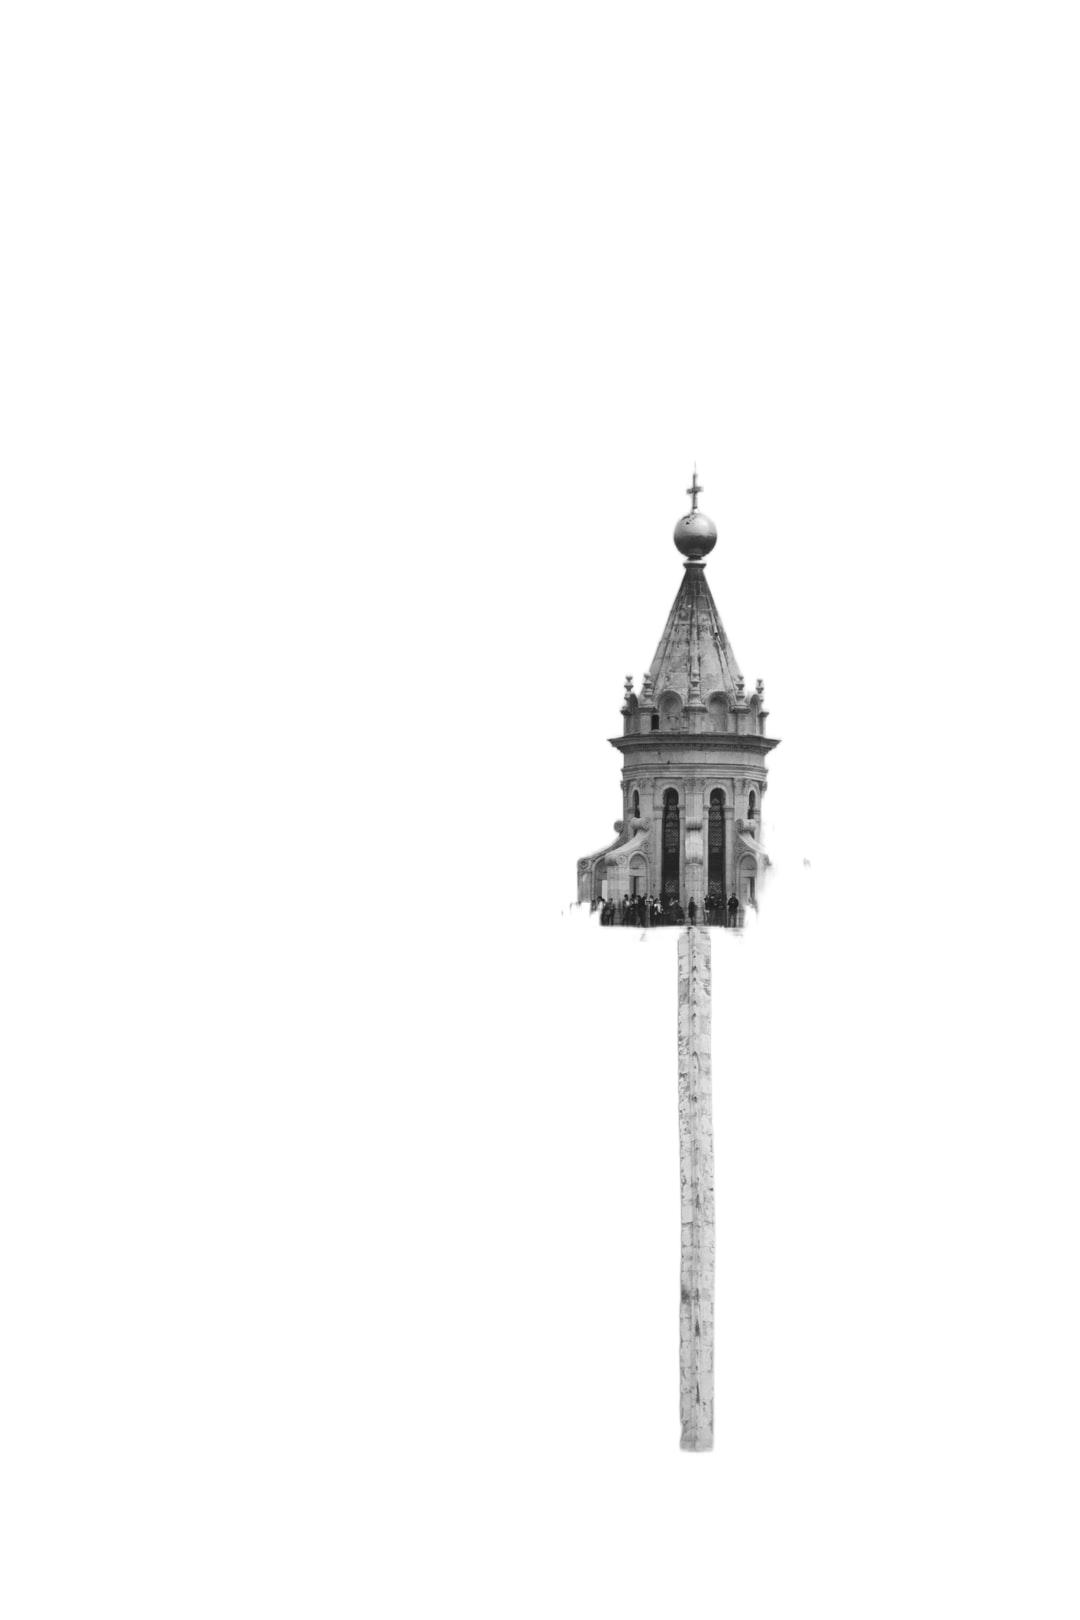 grayscale photography of dome church